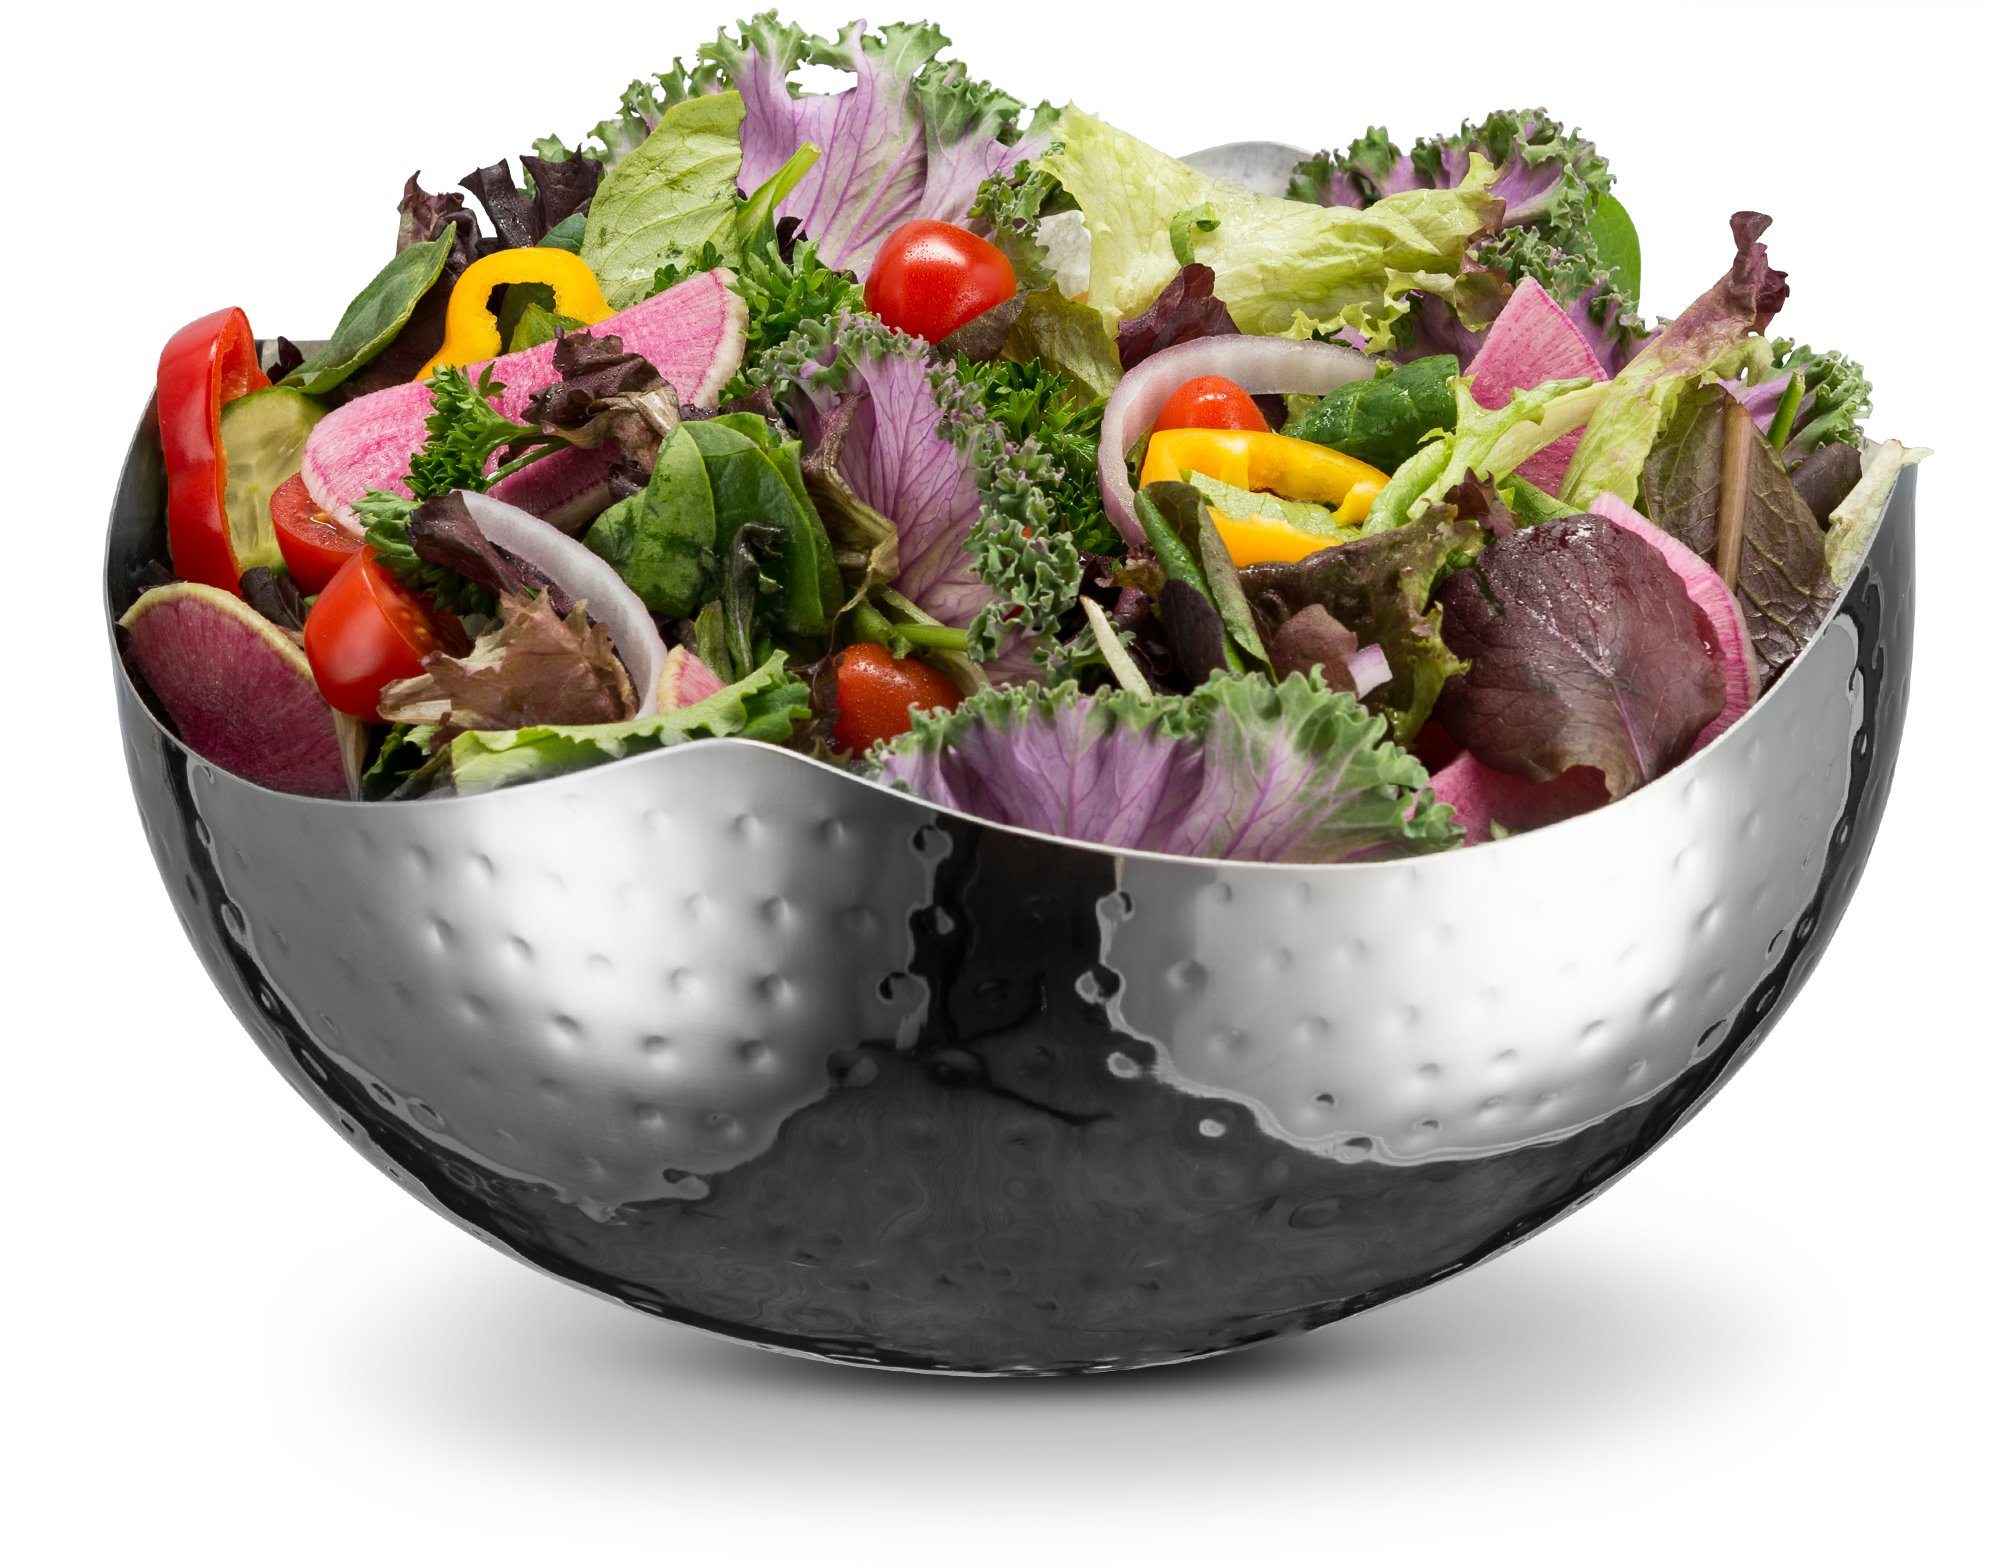 KooK 10 Inch Hammered Style Wave Serving Bowl - Stainless Steel